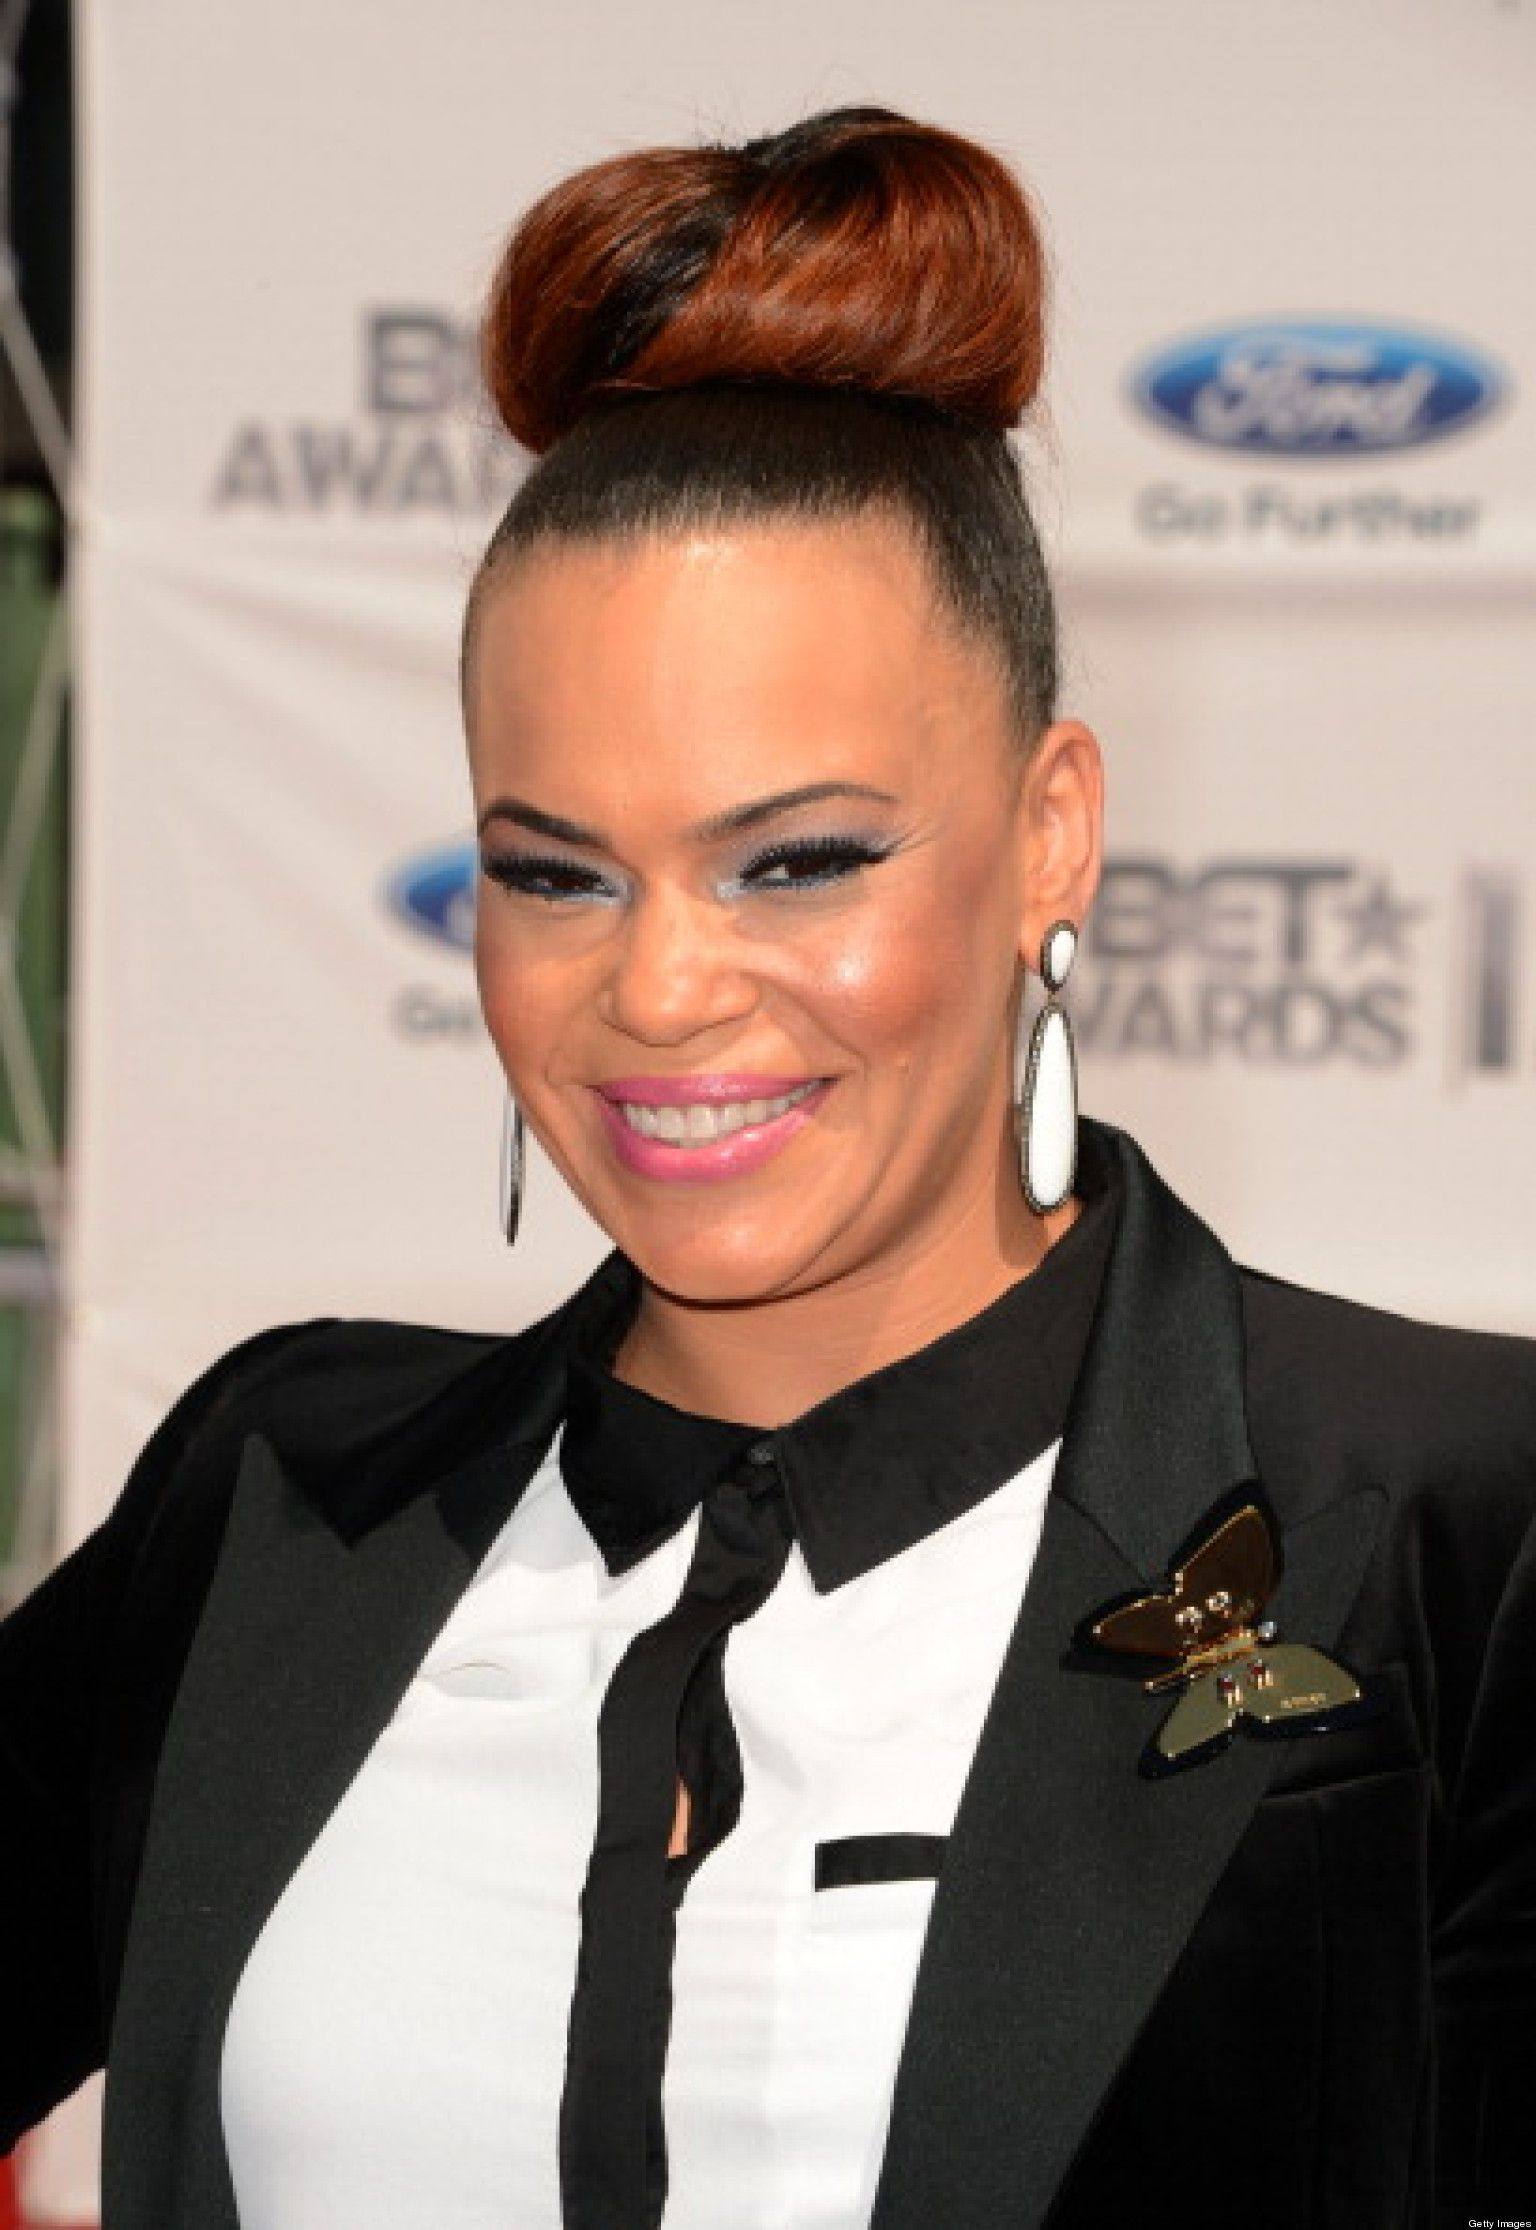 faith evans 1995faith evans i'll be missing you, faith evans 2016, faith evans wiki, faith evans mesmerized, faith evans love like this, faith evans you gets no love lyrics, faith evans 112, faith evans itunes, faith evans 1999, faith evans - the first lady, faith evans young, faith evans tattoo, faith evans & the notorious b.i.g. nyc, faith evans daughter, faith evans big, faith evans 2017, faith evans acapella, faith evans 1995, faith evans true love lyrics, faith evans back to love